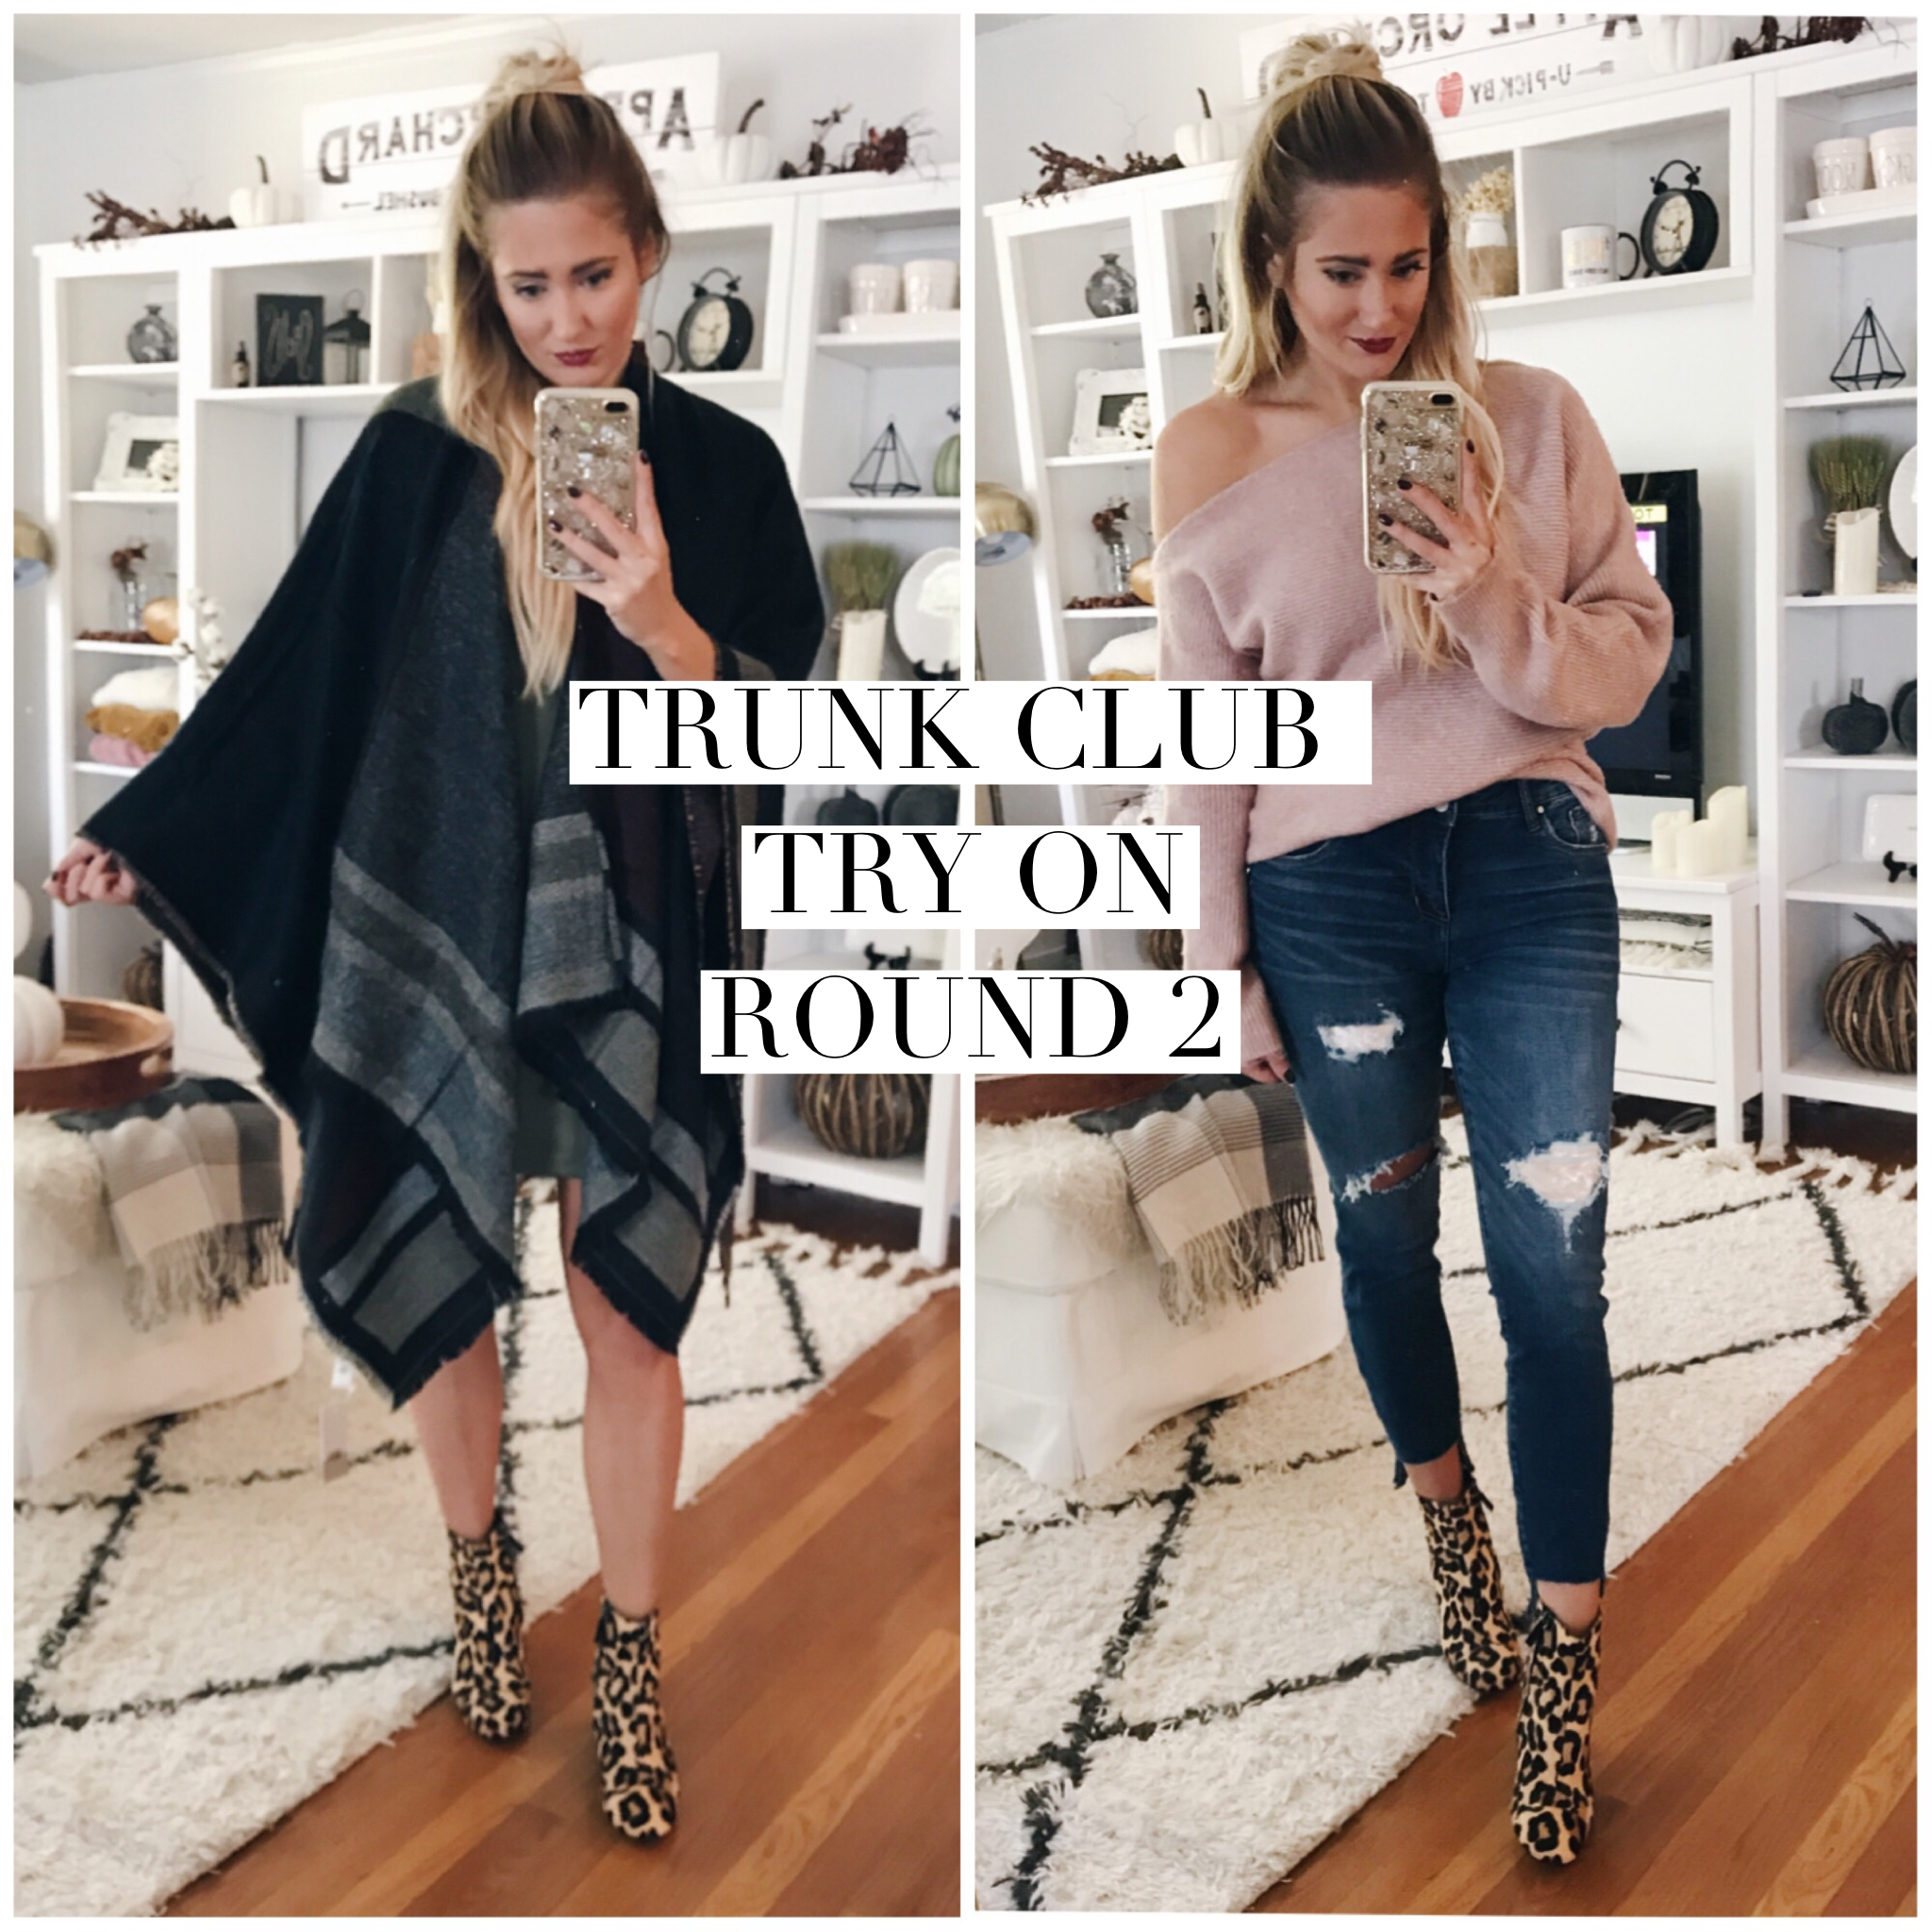 TRUNK CLUB TRY ON: ROUND 2